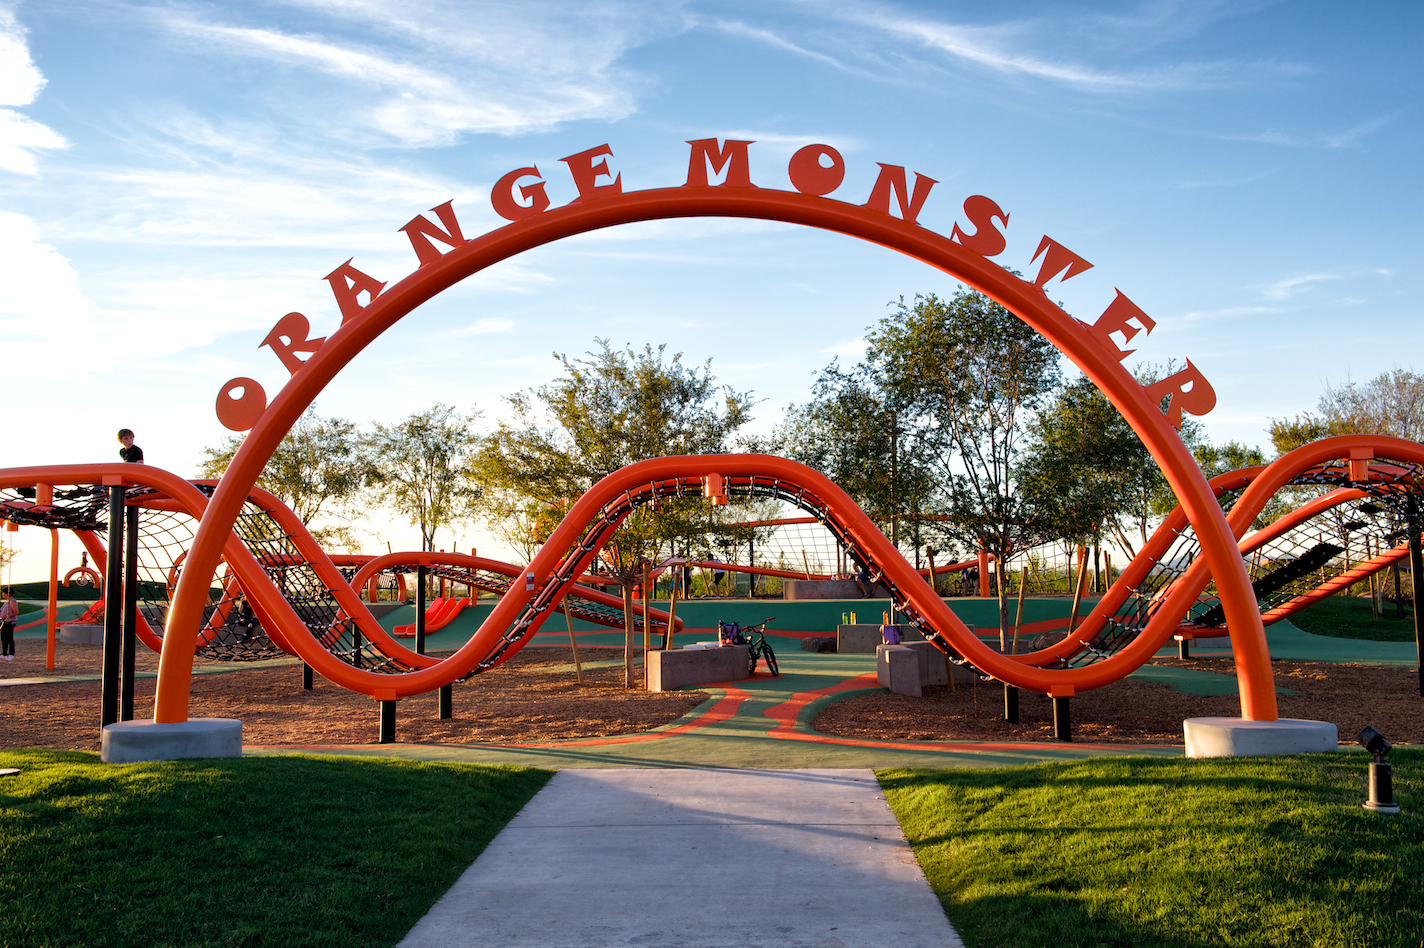 Orange Monster opens to the public at The Eastmark Great Park